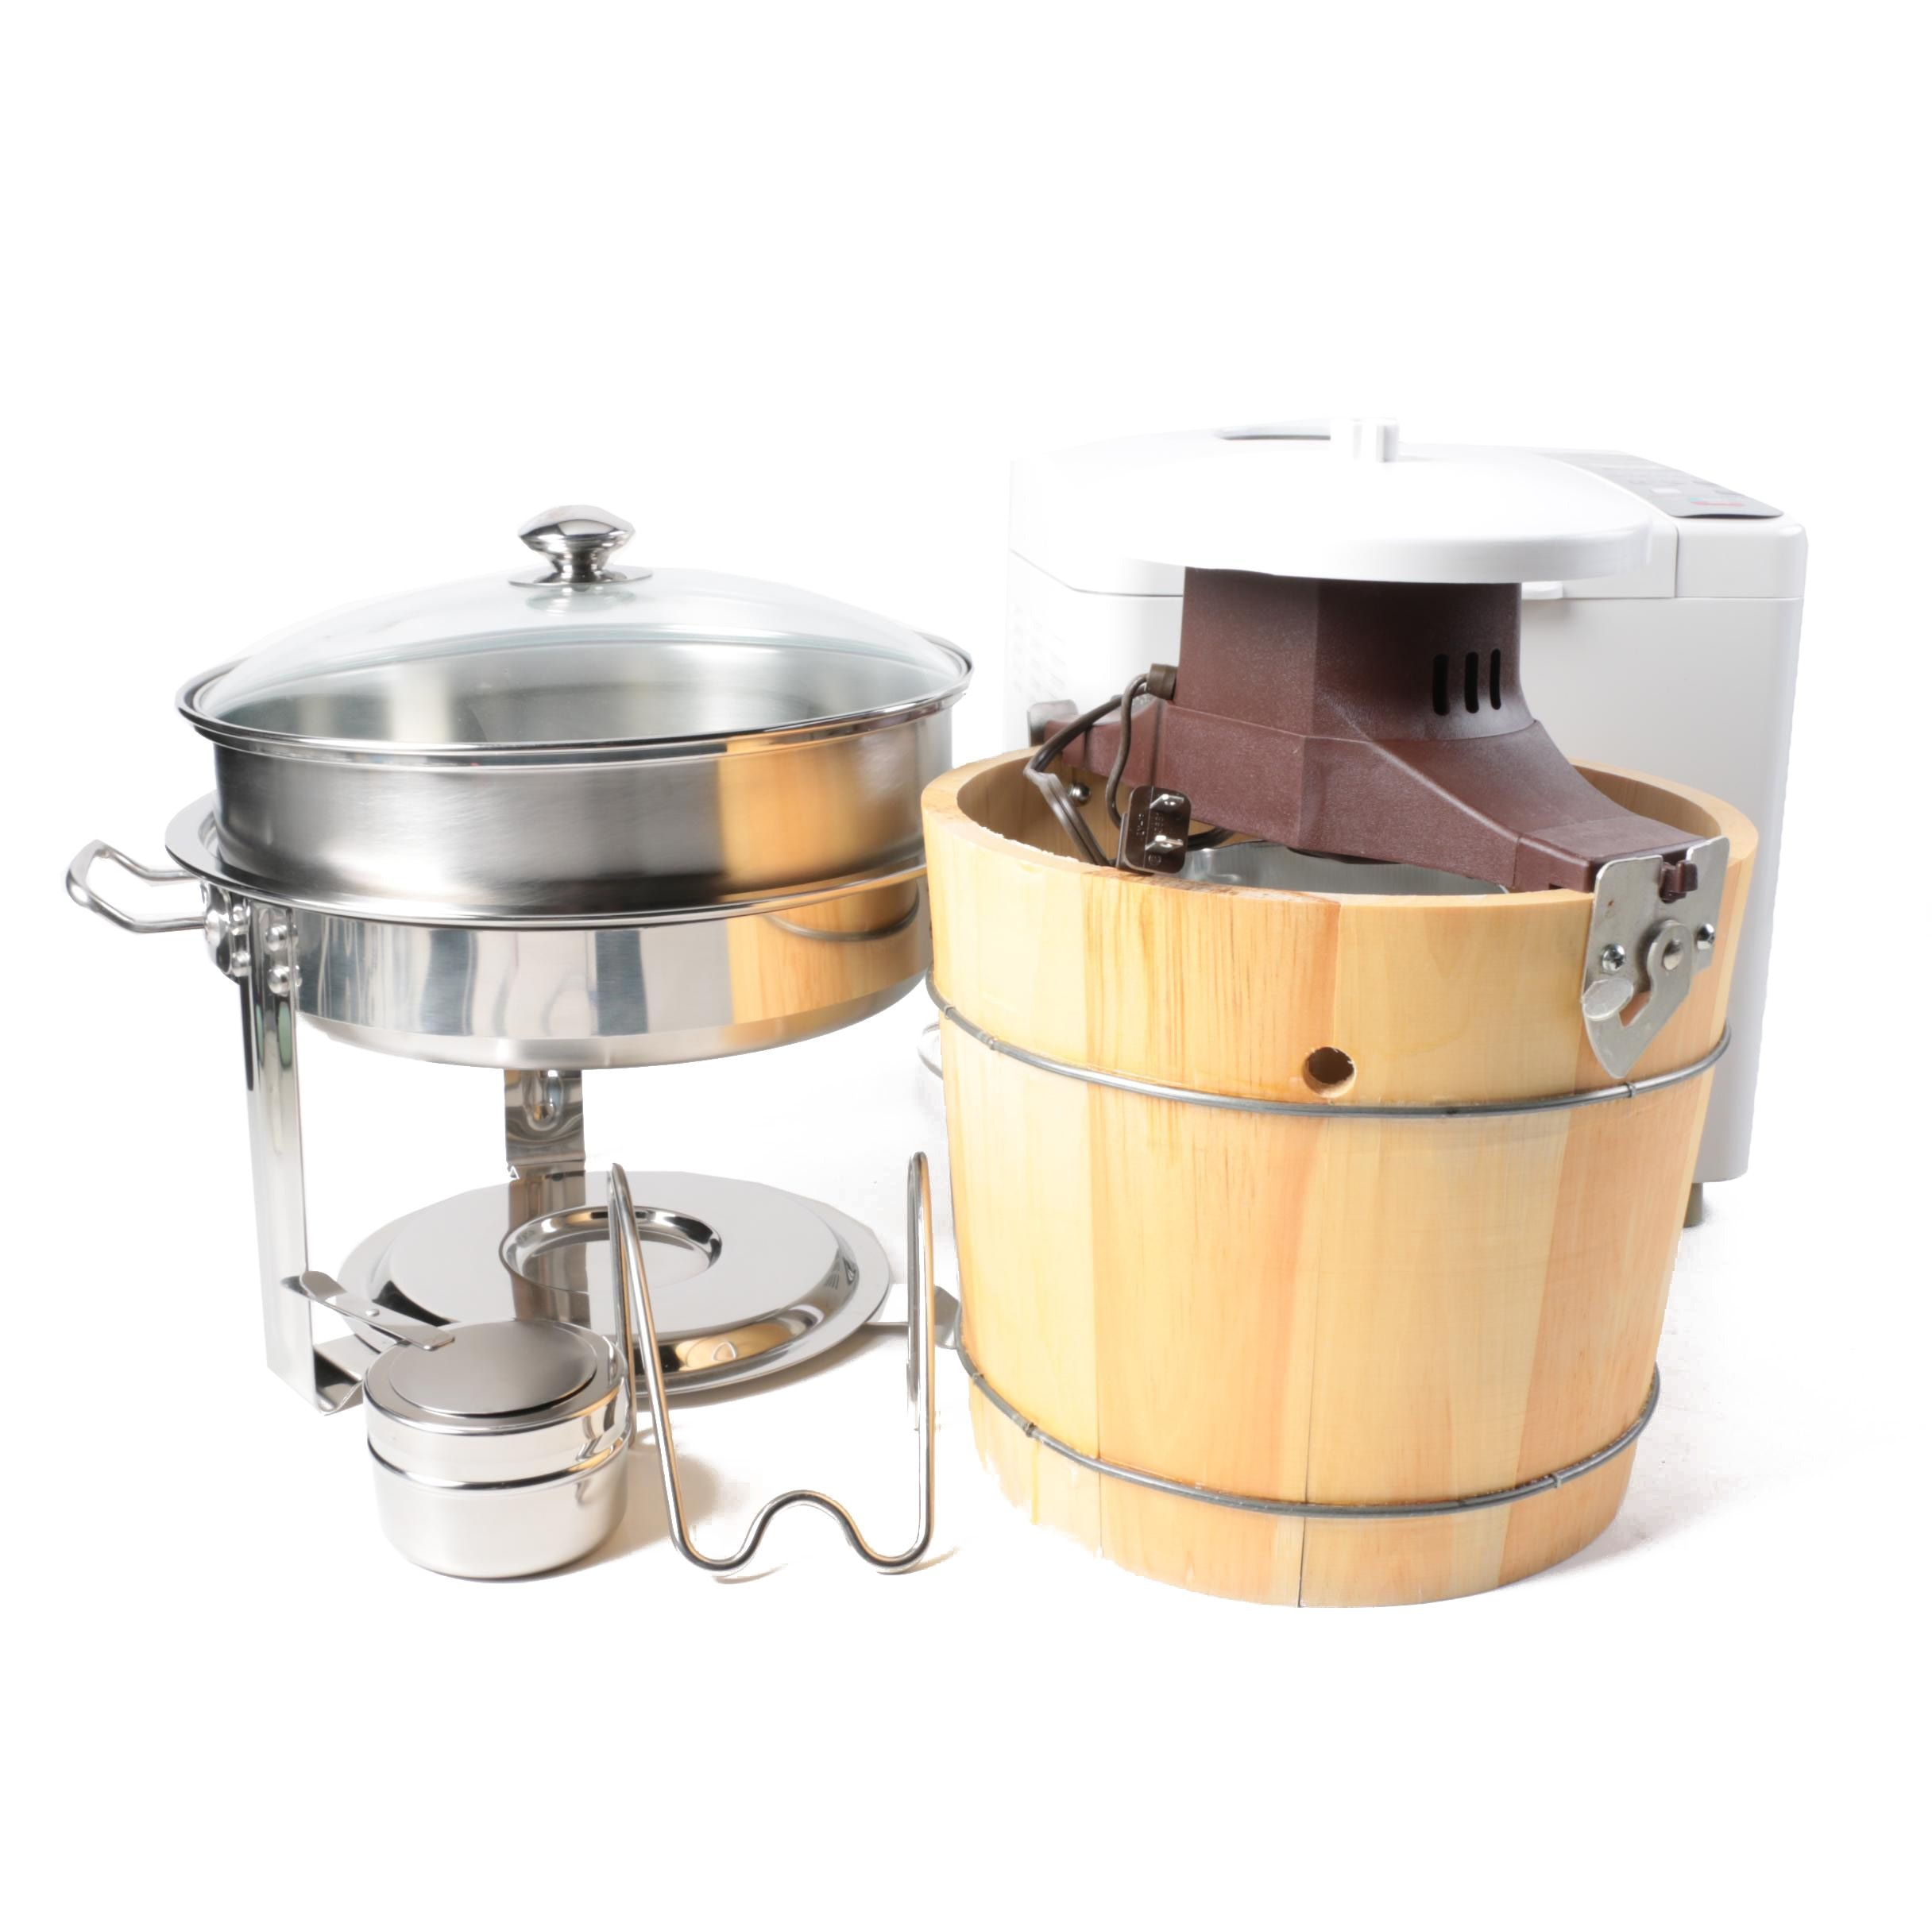 Kitchen Appliances Featuring Rival Ice Cream Maker